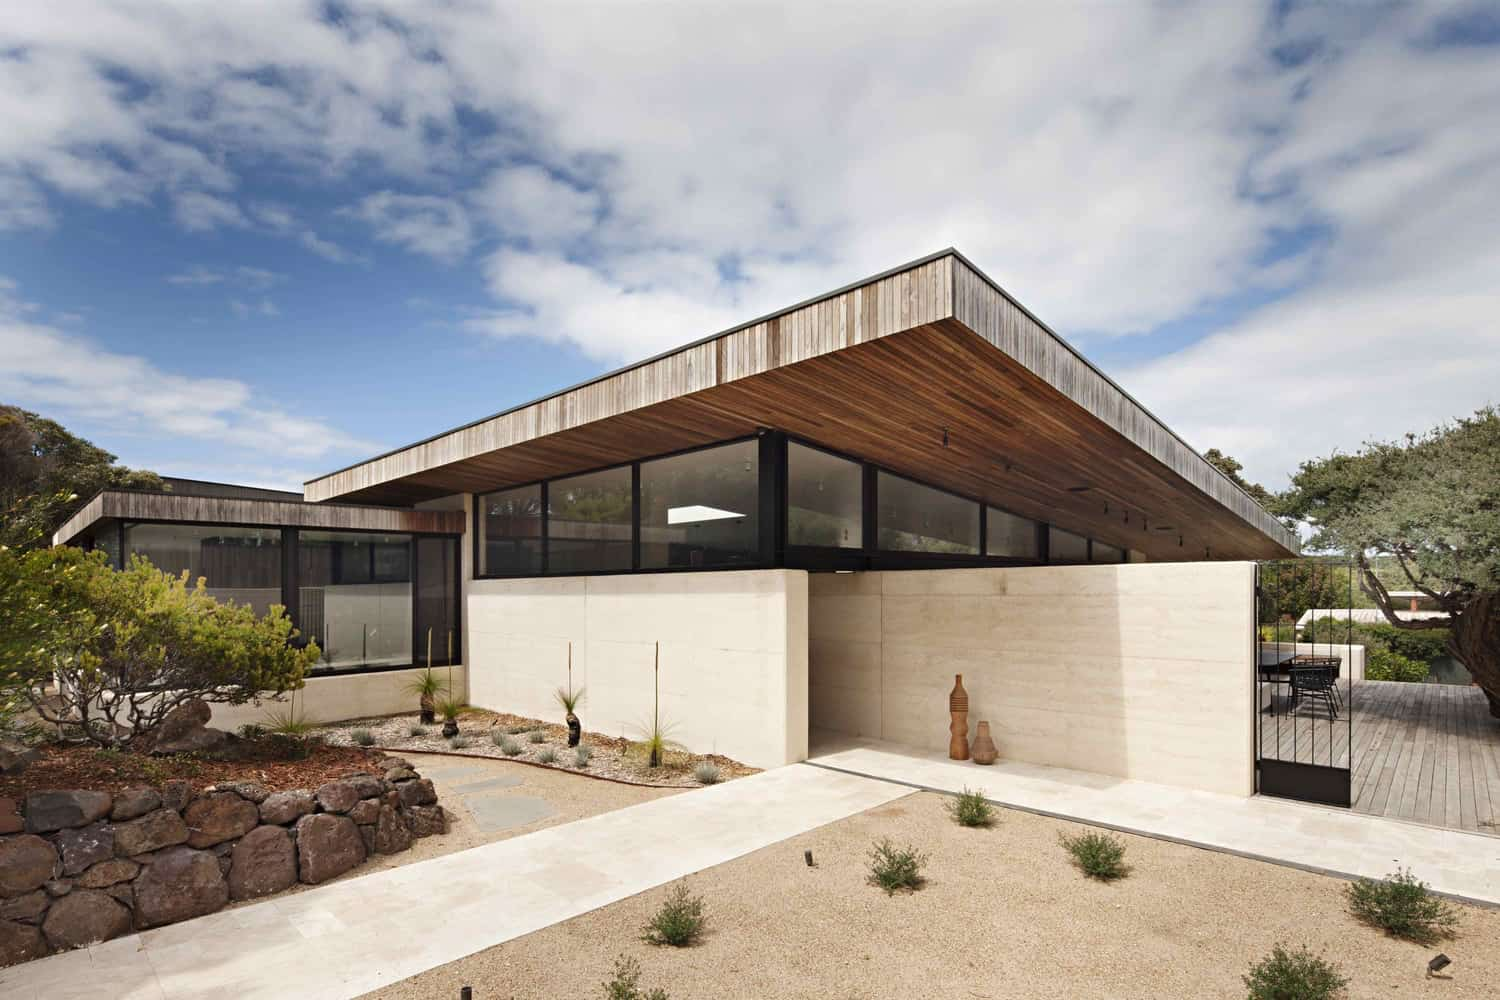 Coastal home in australia showcases rammed earth and timber for Coastal contemporary design